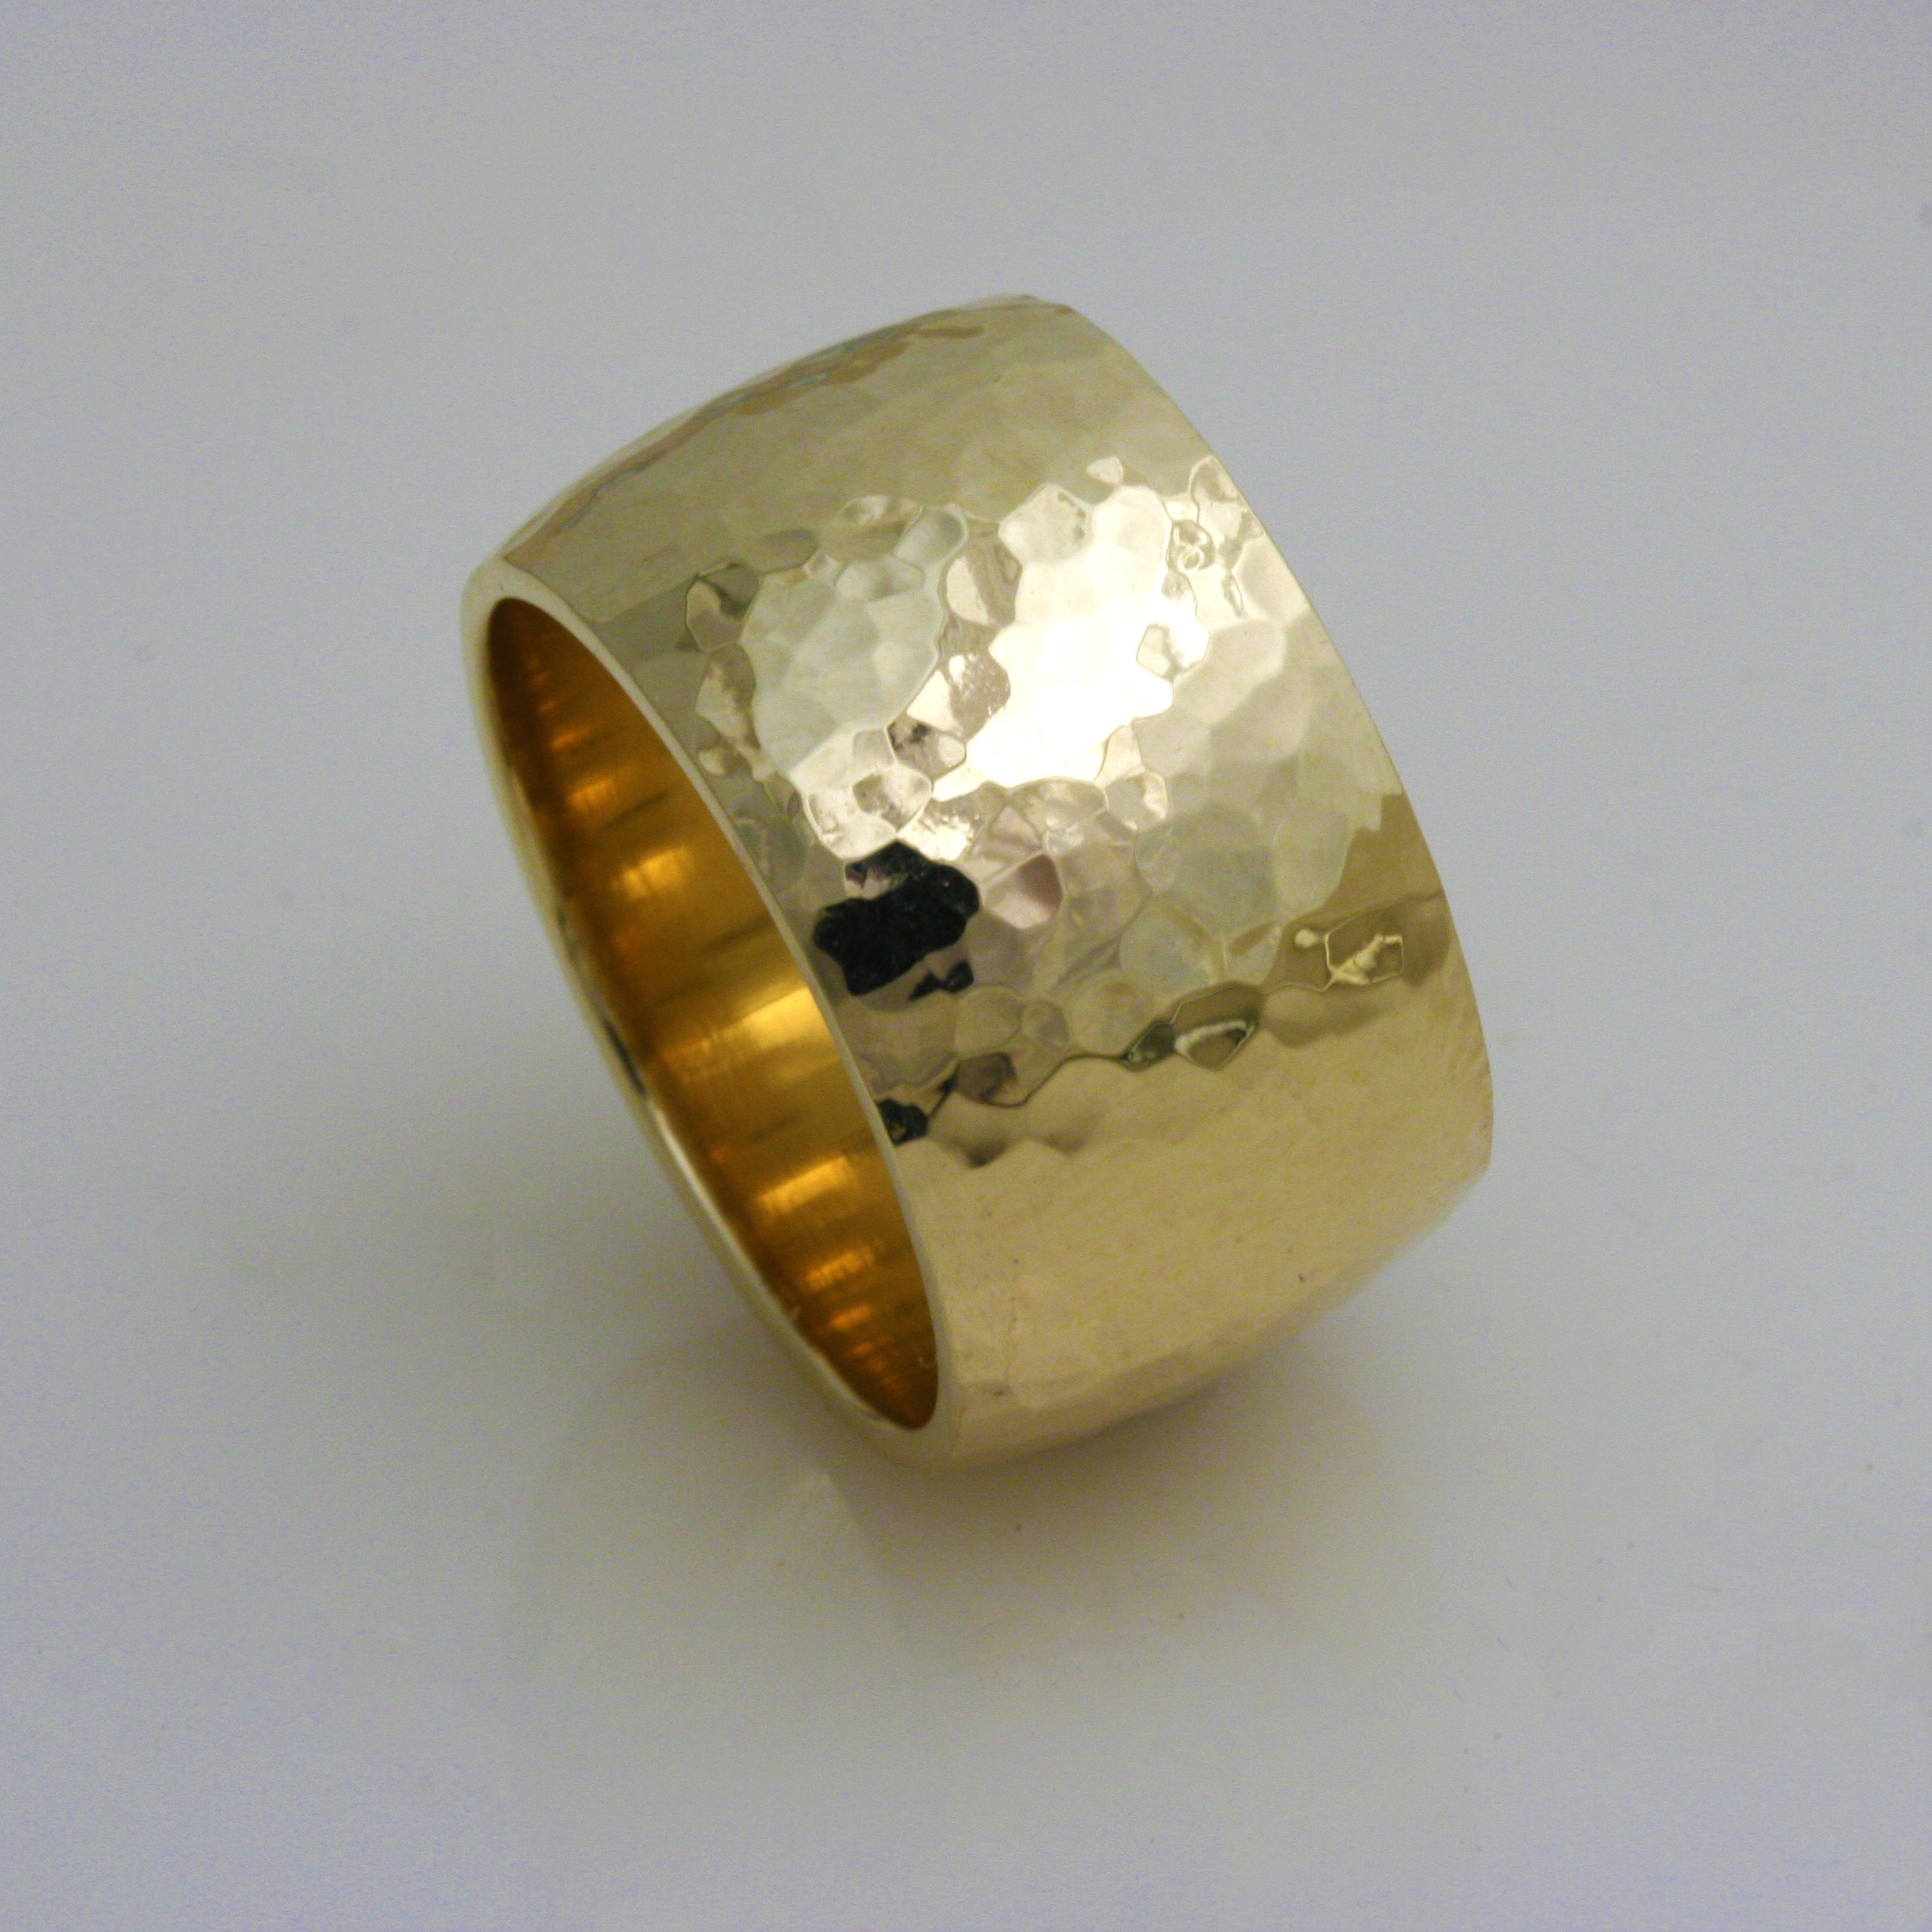 Euphoria Hammered Gold Ring 3